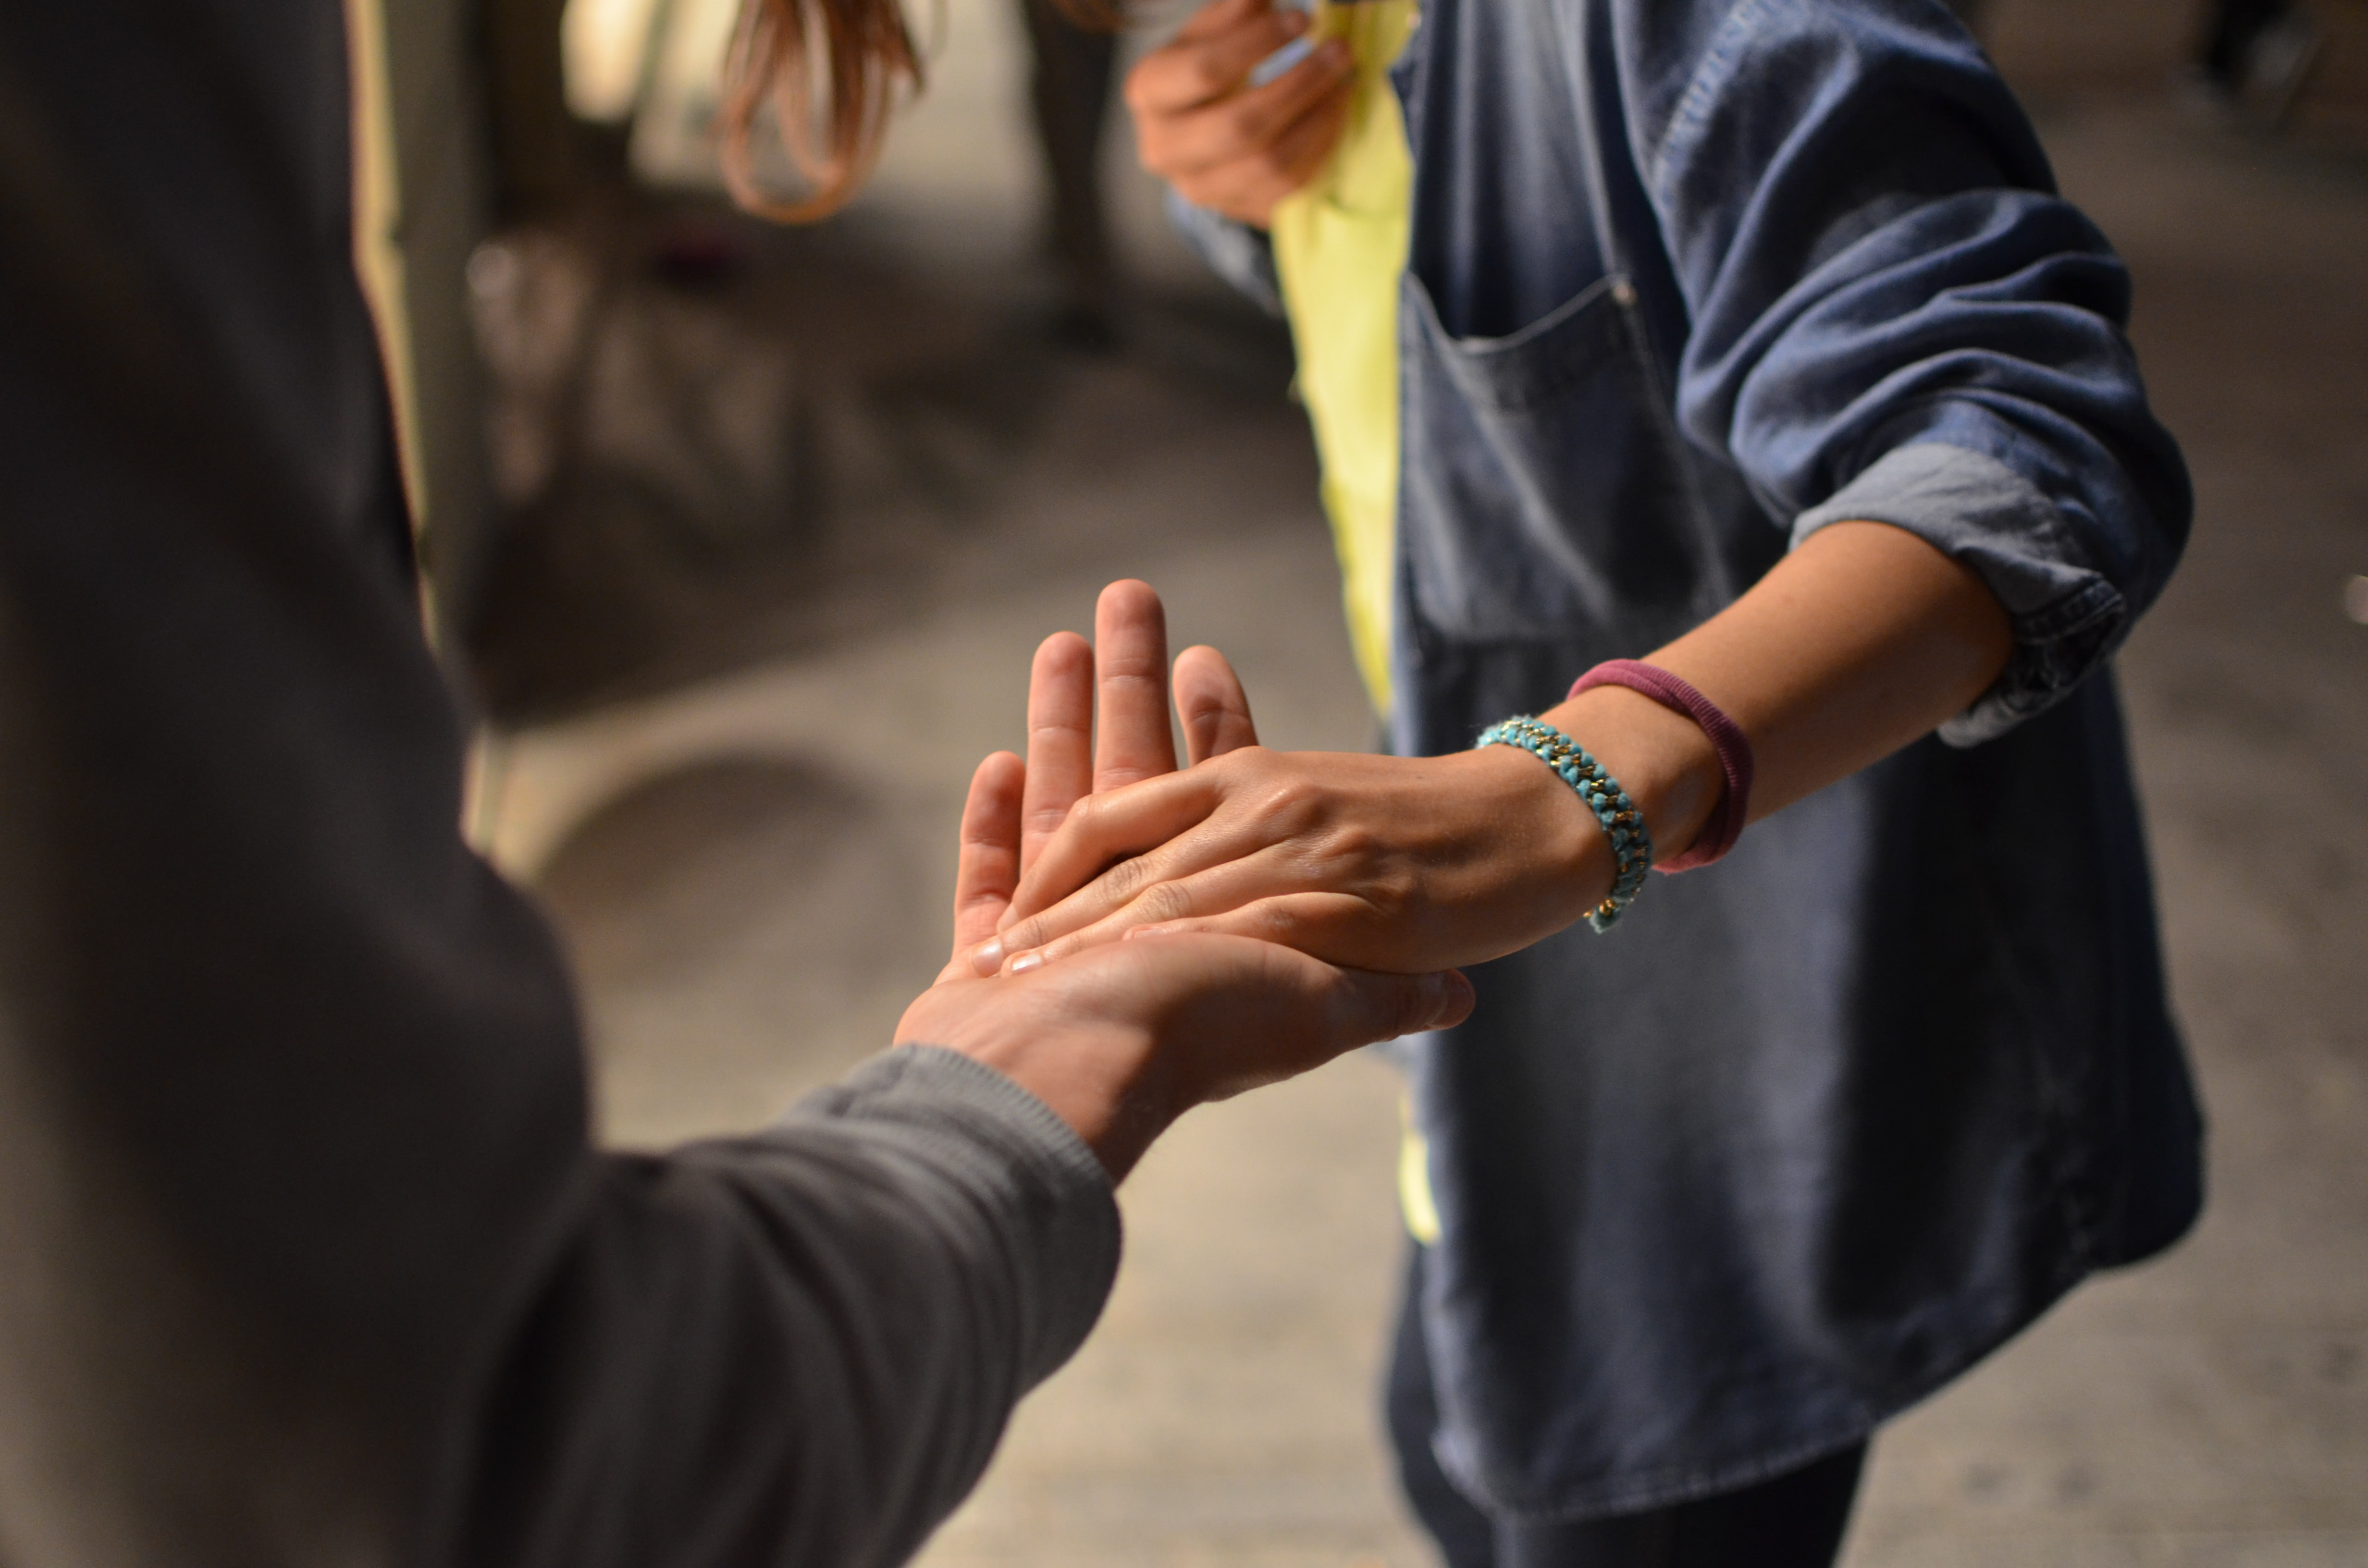 Cover image used in the article that this post links to. The photo shows the torsos of two people, with the focus on their hands. One person is reaching out, palm up, from the foreground, the other is resting their hand on top of the offered hand.